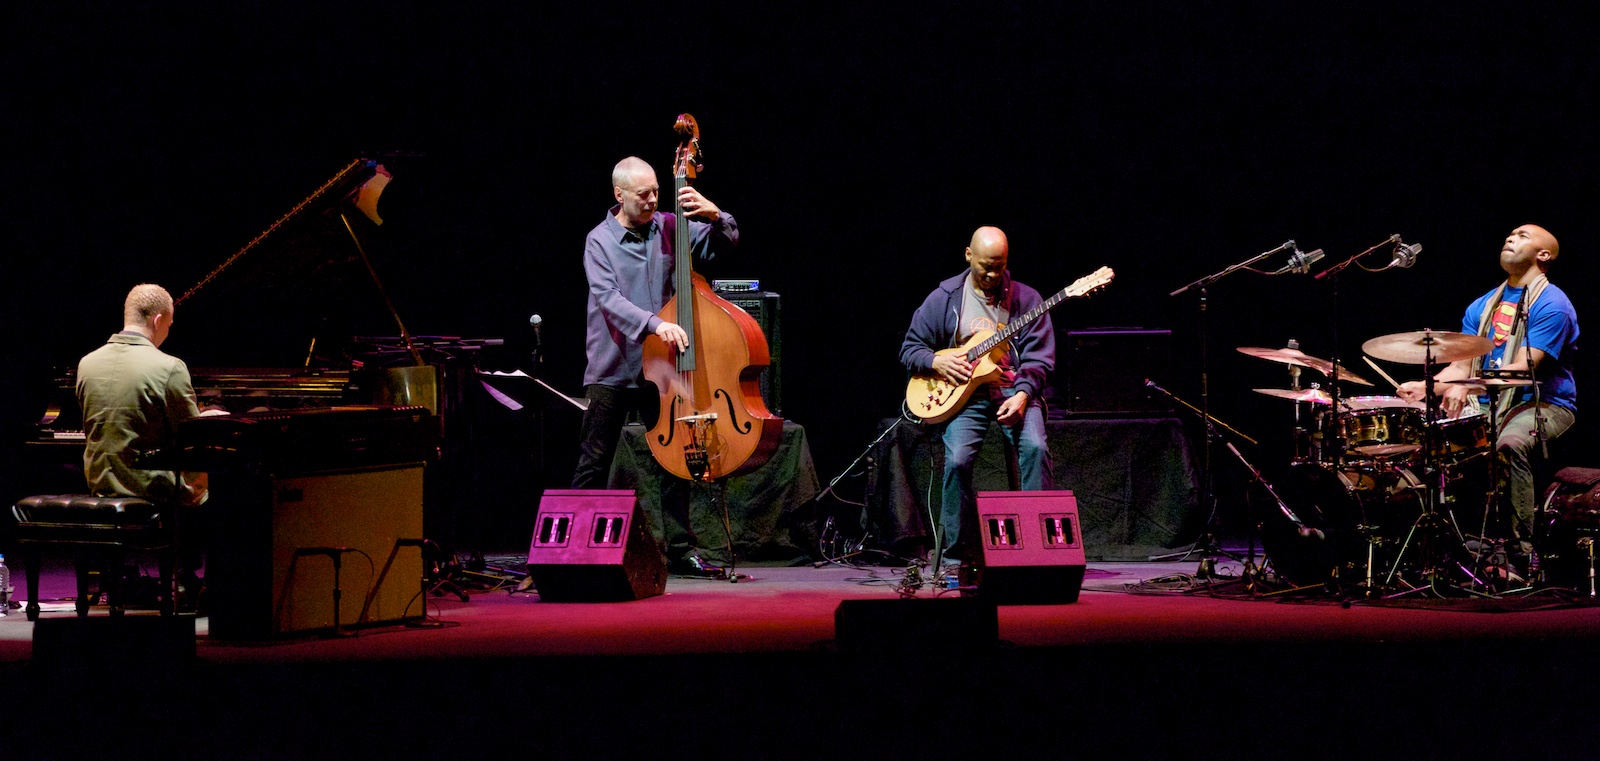 Musical Prism, Dave Holland and company energize the Angel City Jazz Festival